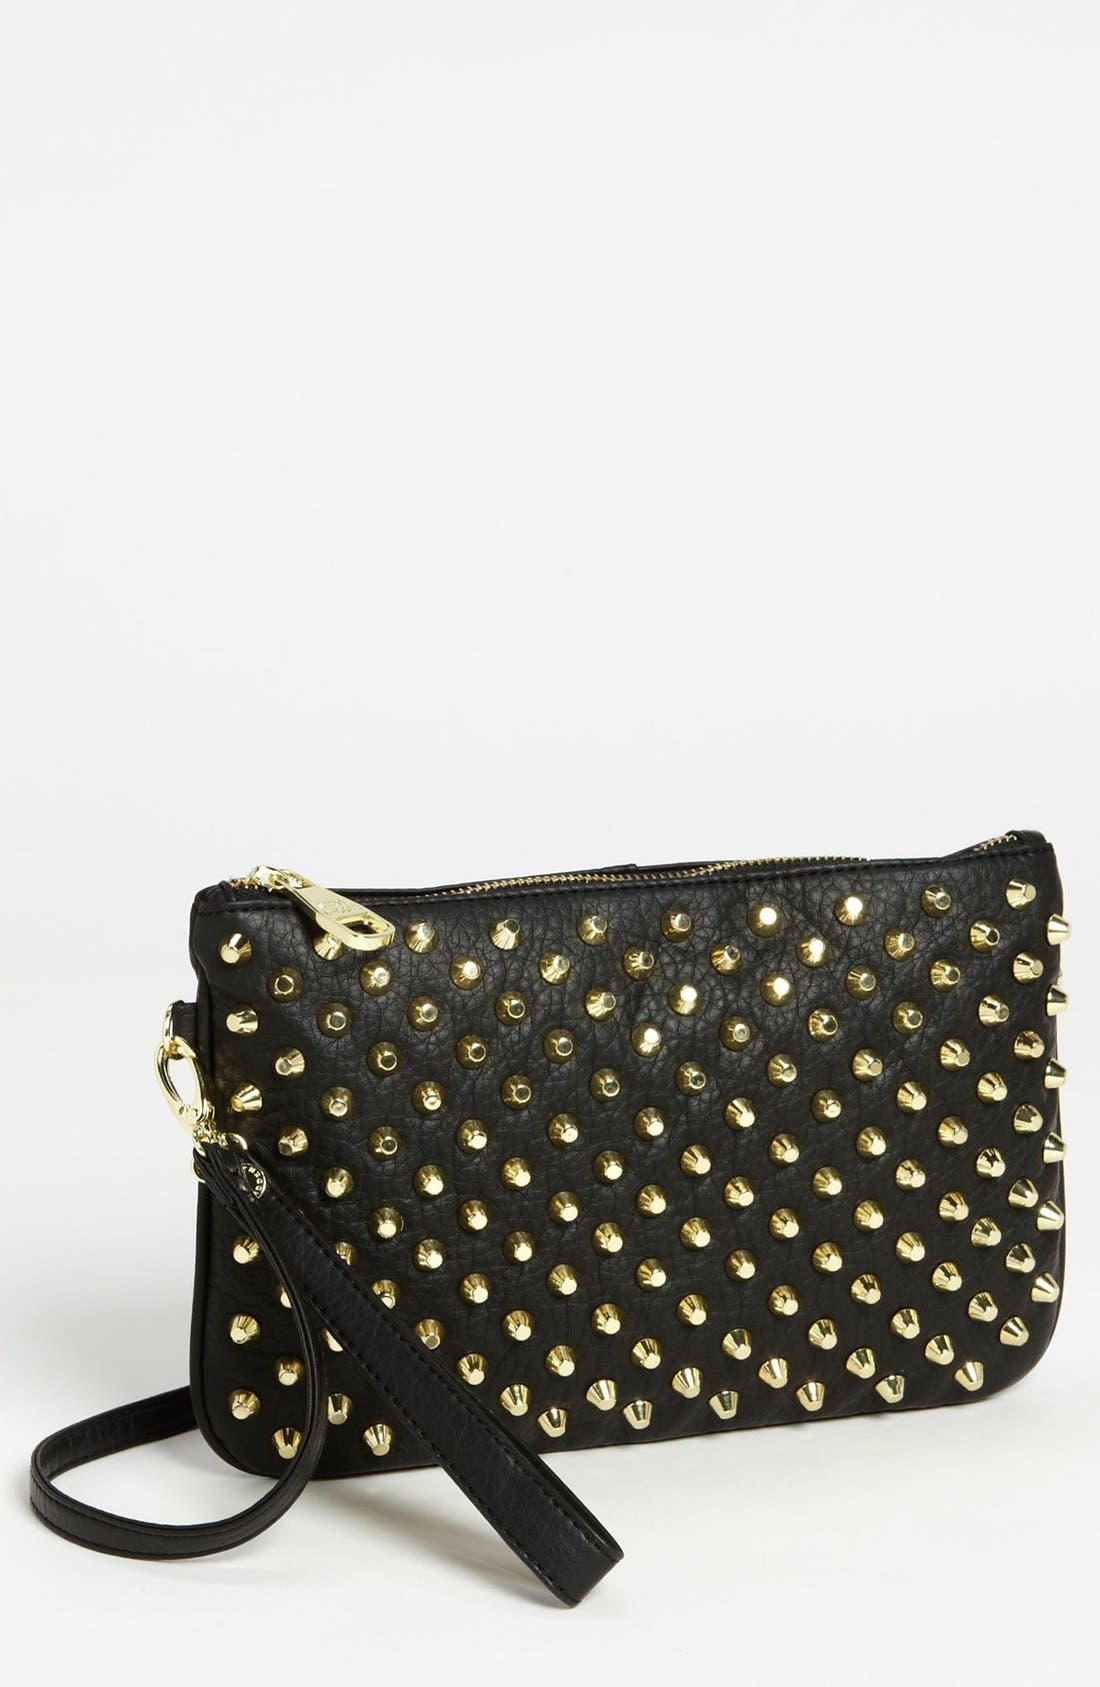 Main Image - Steve Madden Studded Faux Leather Clutch